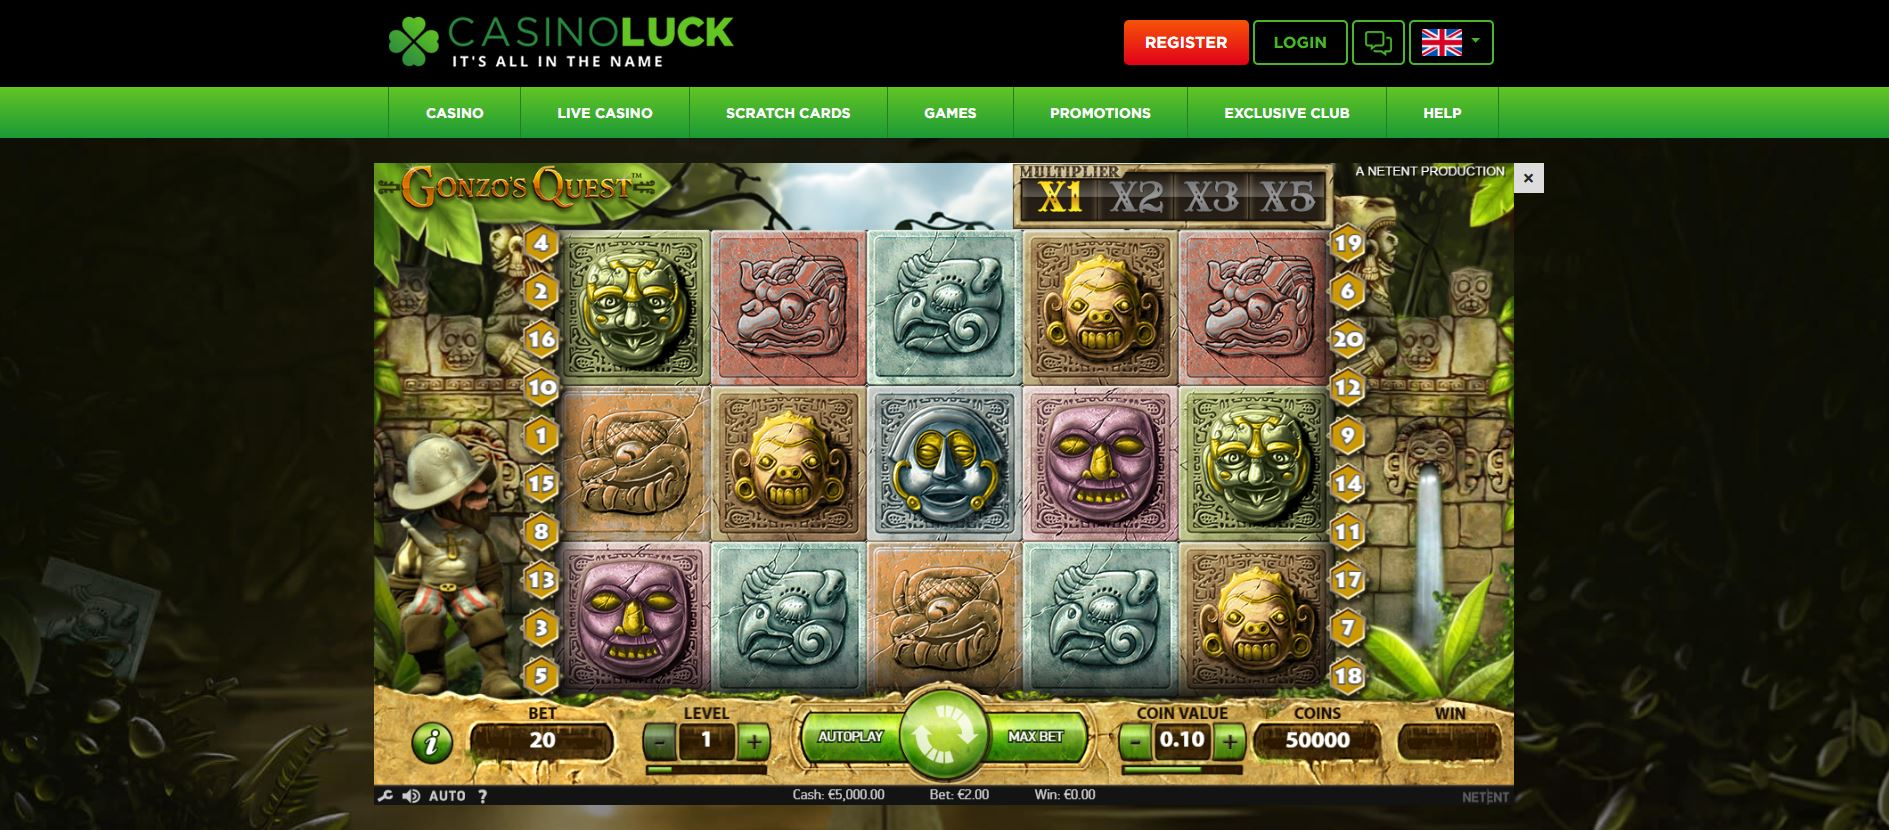 Casino Luck Game Play Page